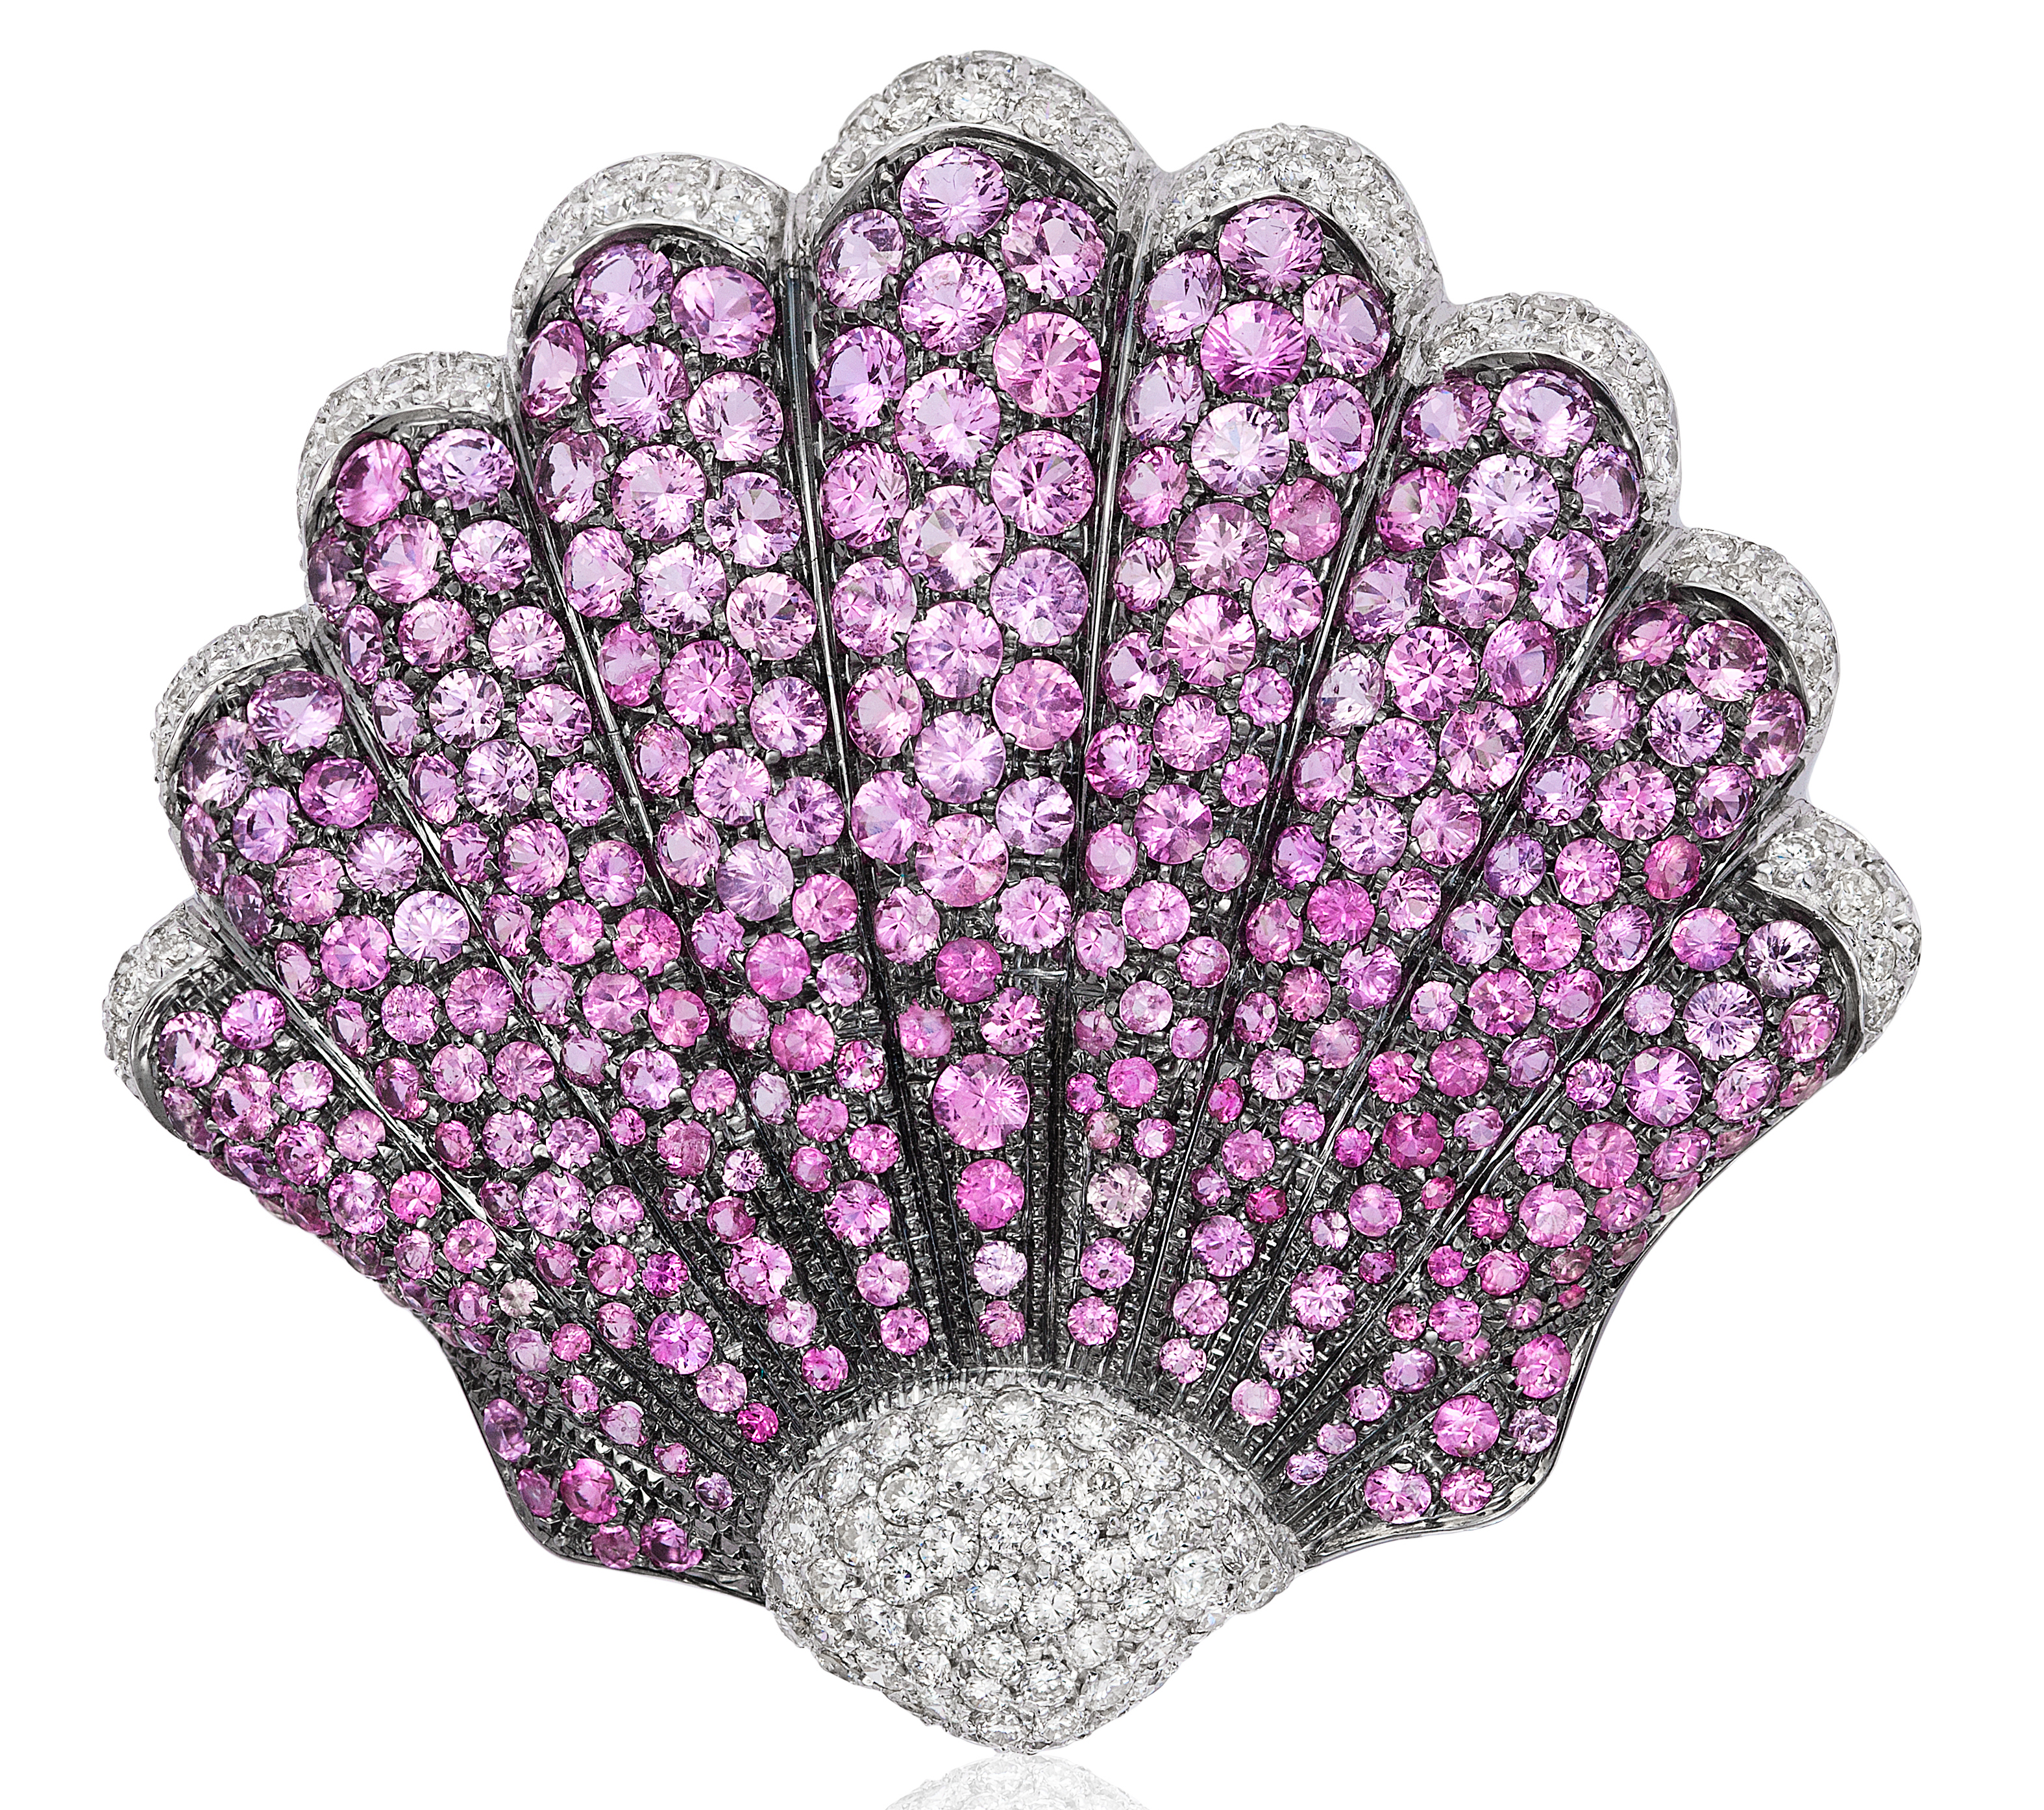 Andreoli pink sapphire shell brooch | JCK On Your Market